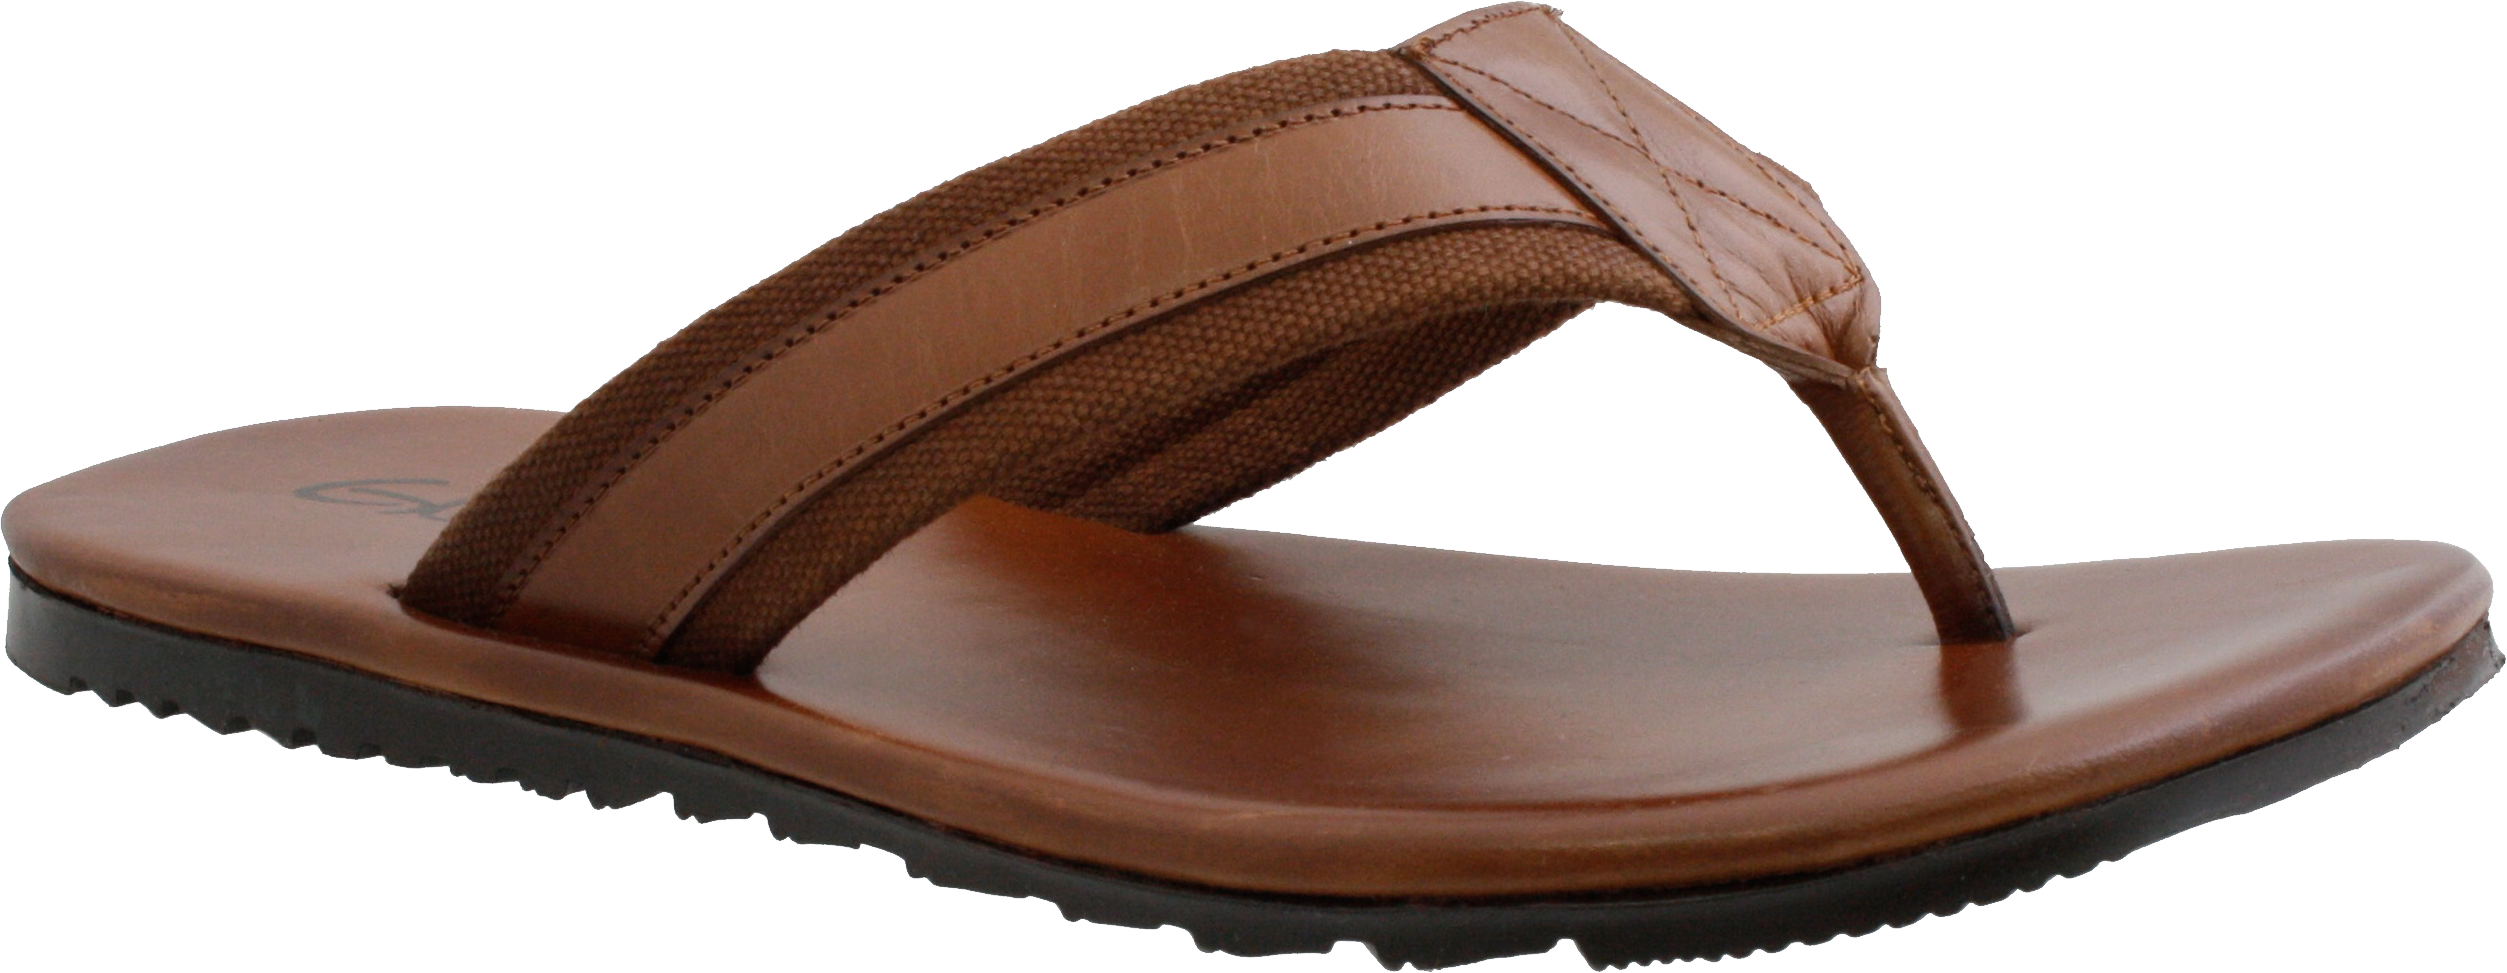 Download Sandals PNG.